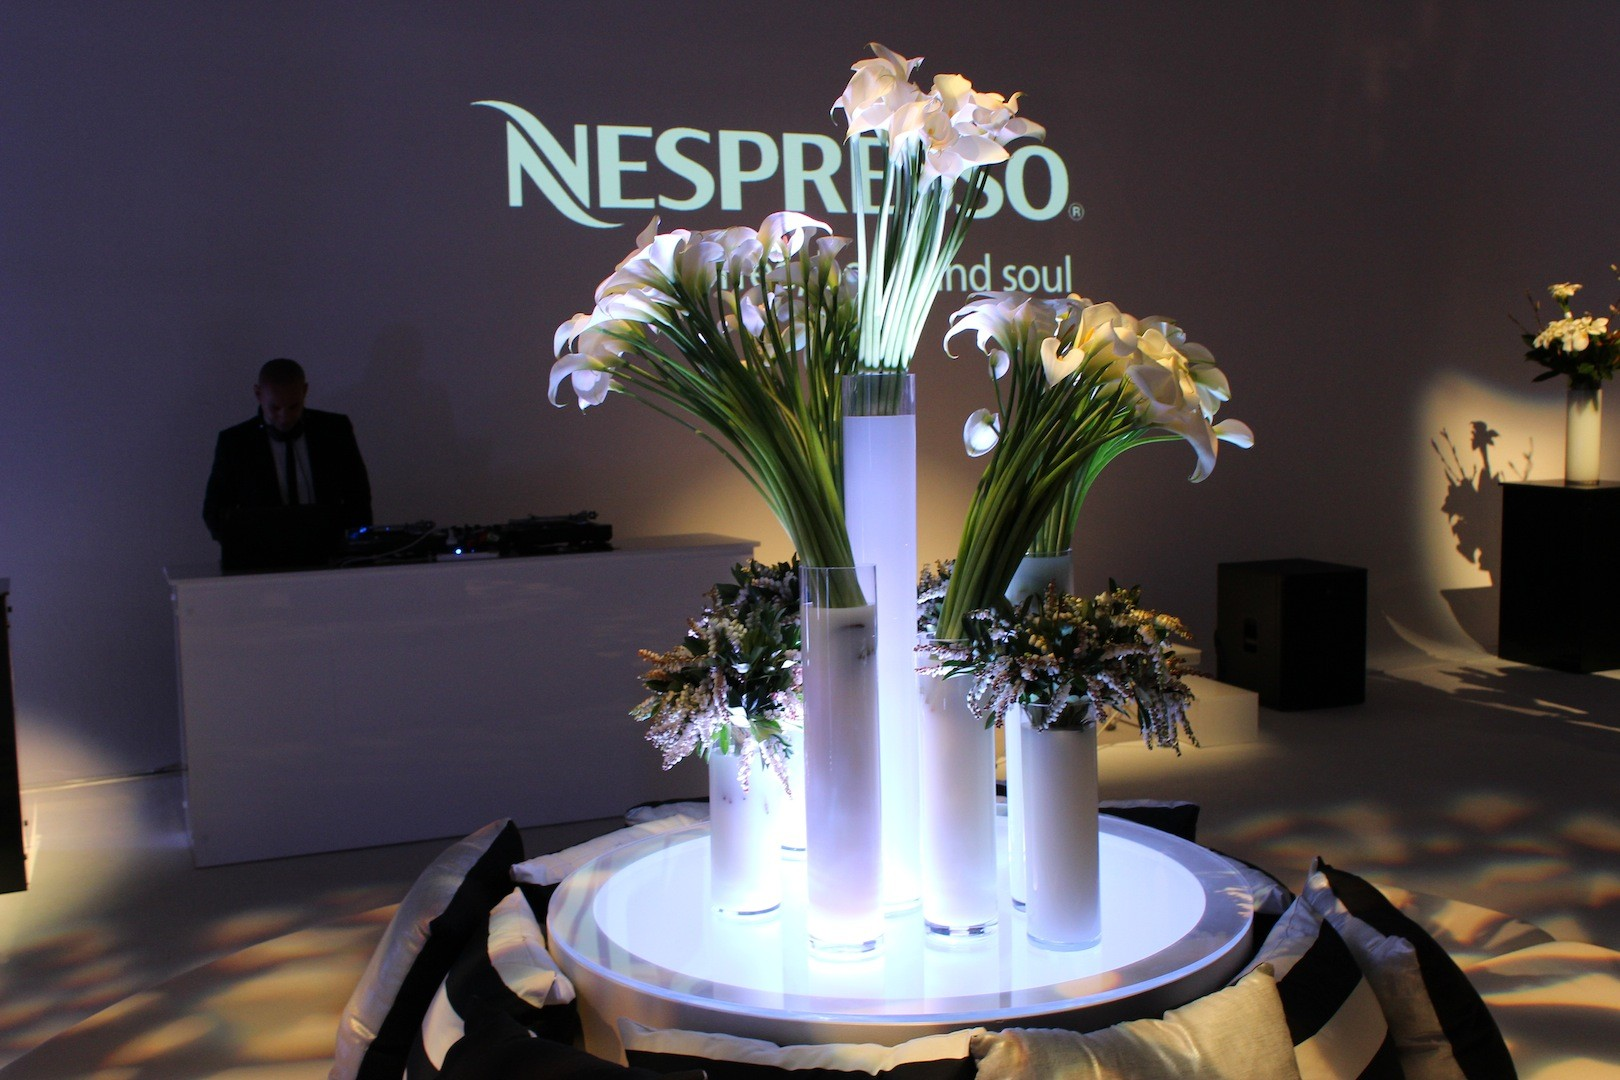 Nespresso, Nespresso NZ, Nespresso Umilk, CCC PR, Cathy Campbell PR, Elena Bluhm, nespresso coffee, fashion blog nz, style blog nz, beauty blog nz, fashion media nz, beauty media nz, angie fredatovich, gurlinterrupted, nzgirl, nz blogger